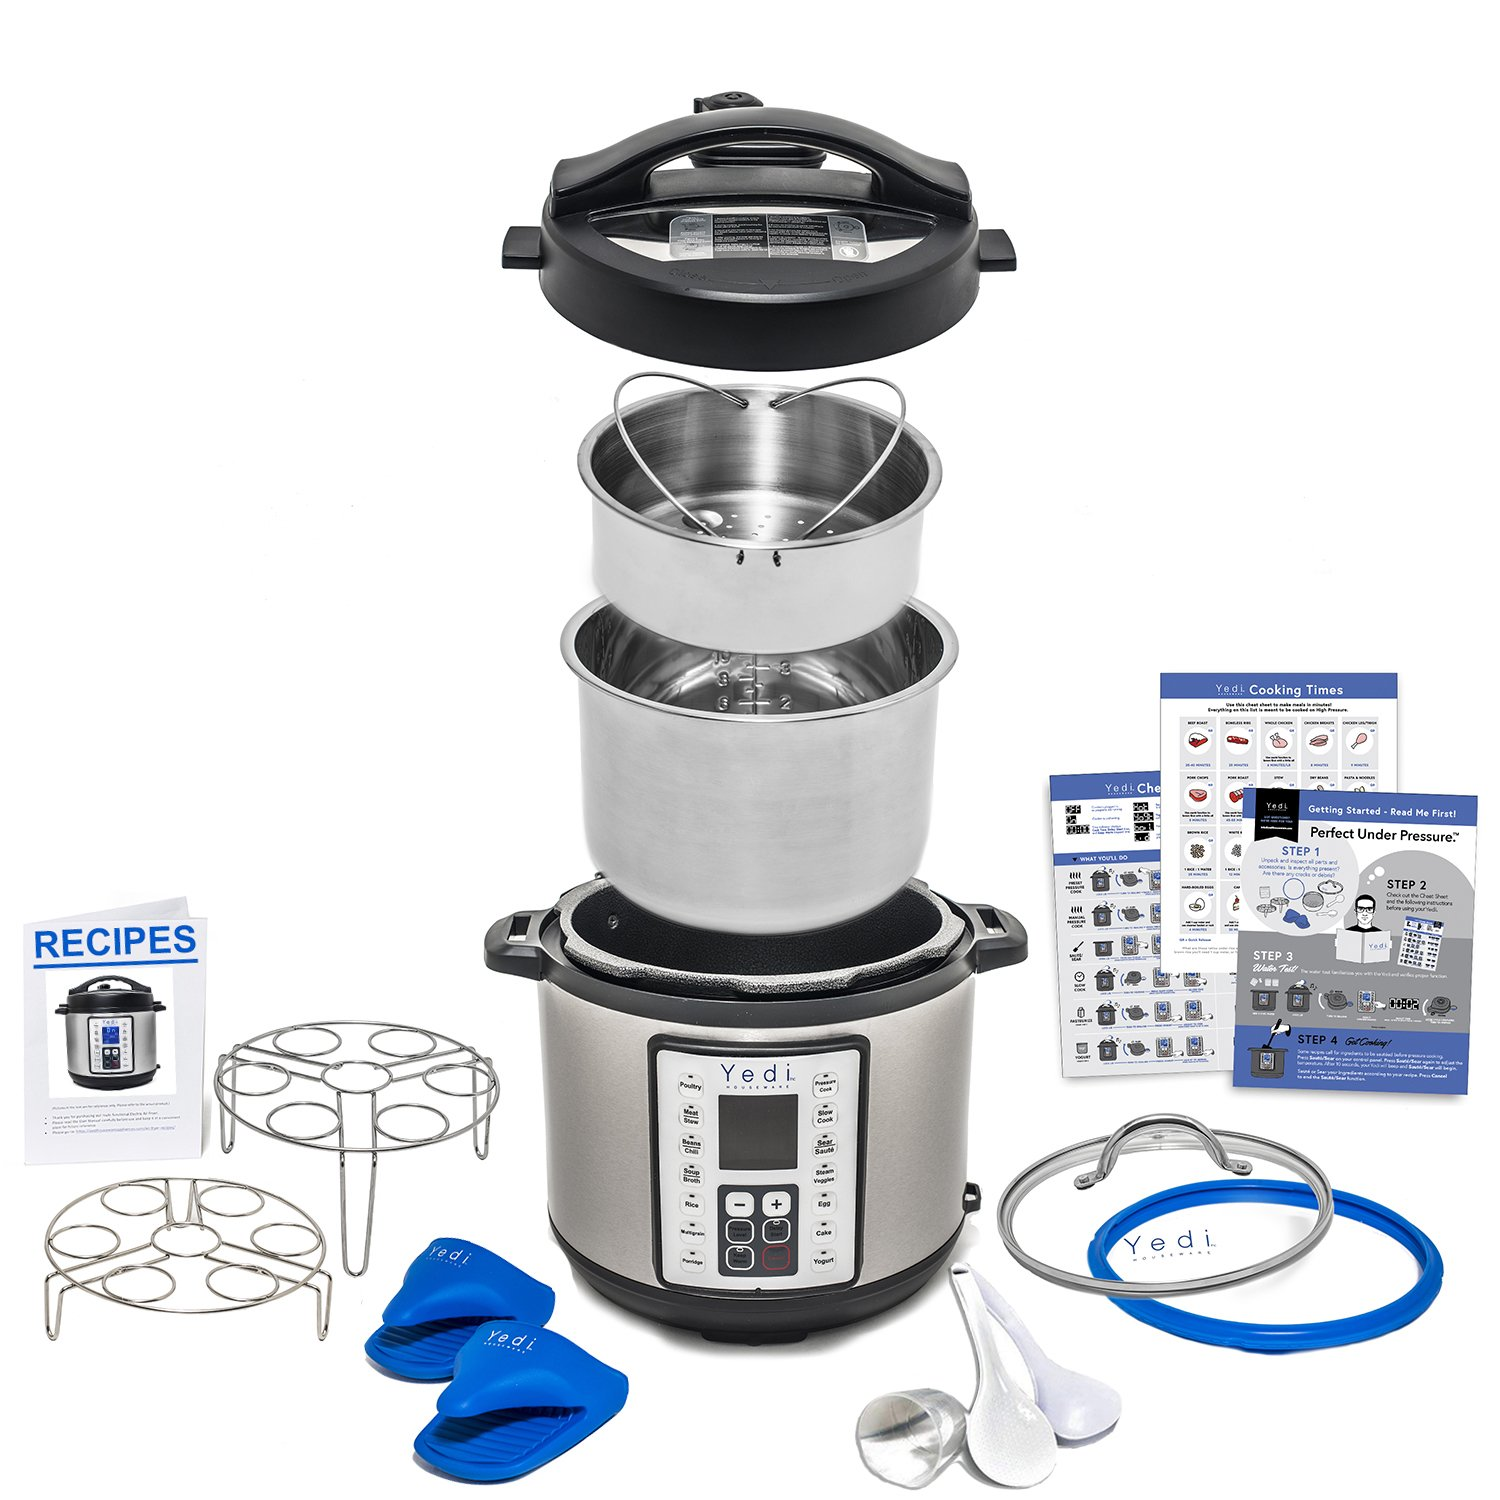 9-in-1 Multi-Use Instant Programmable Pressure Cooker, with Recipes, Deluxe Accessory Kit and 6 Quart Stainless Steel Inner Pot by Yedi Houseware